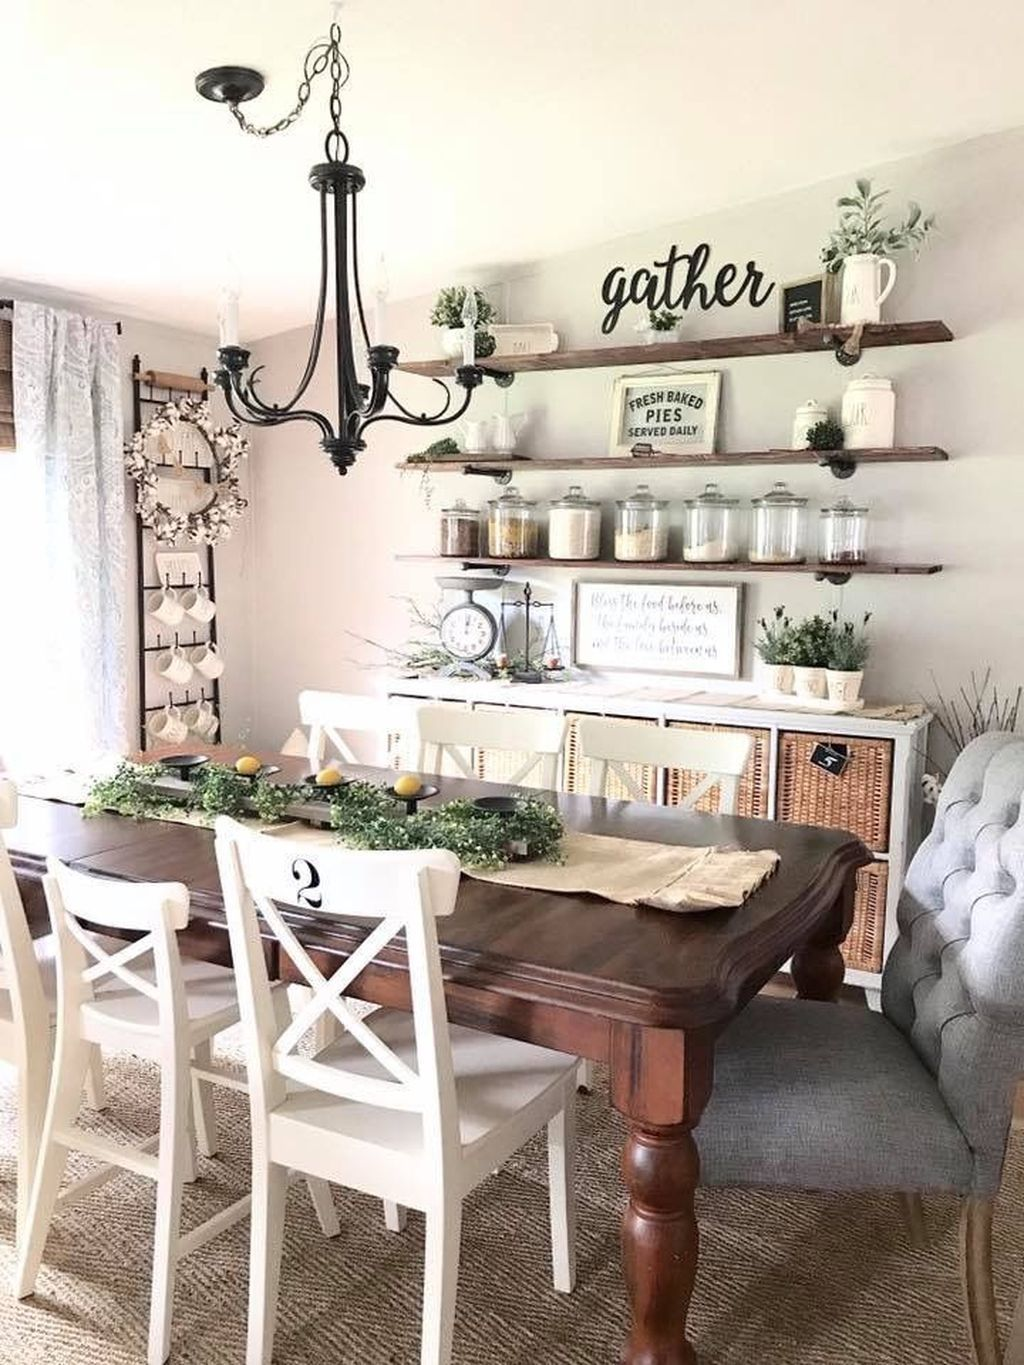 20 Fantastic Dining Room Decor Ideas With Farmhouse Style Diningrooms A Dining Room Dining Room Decor Country Farmhouse Dining Rooms Decor Rustic Dining Room